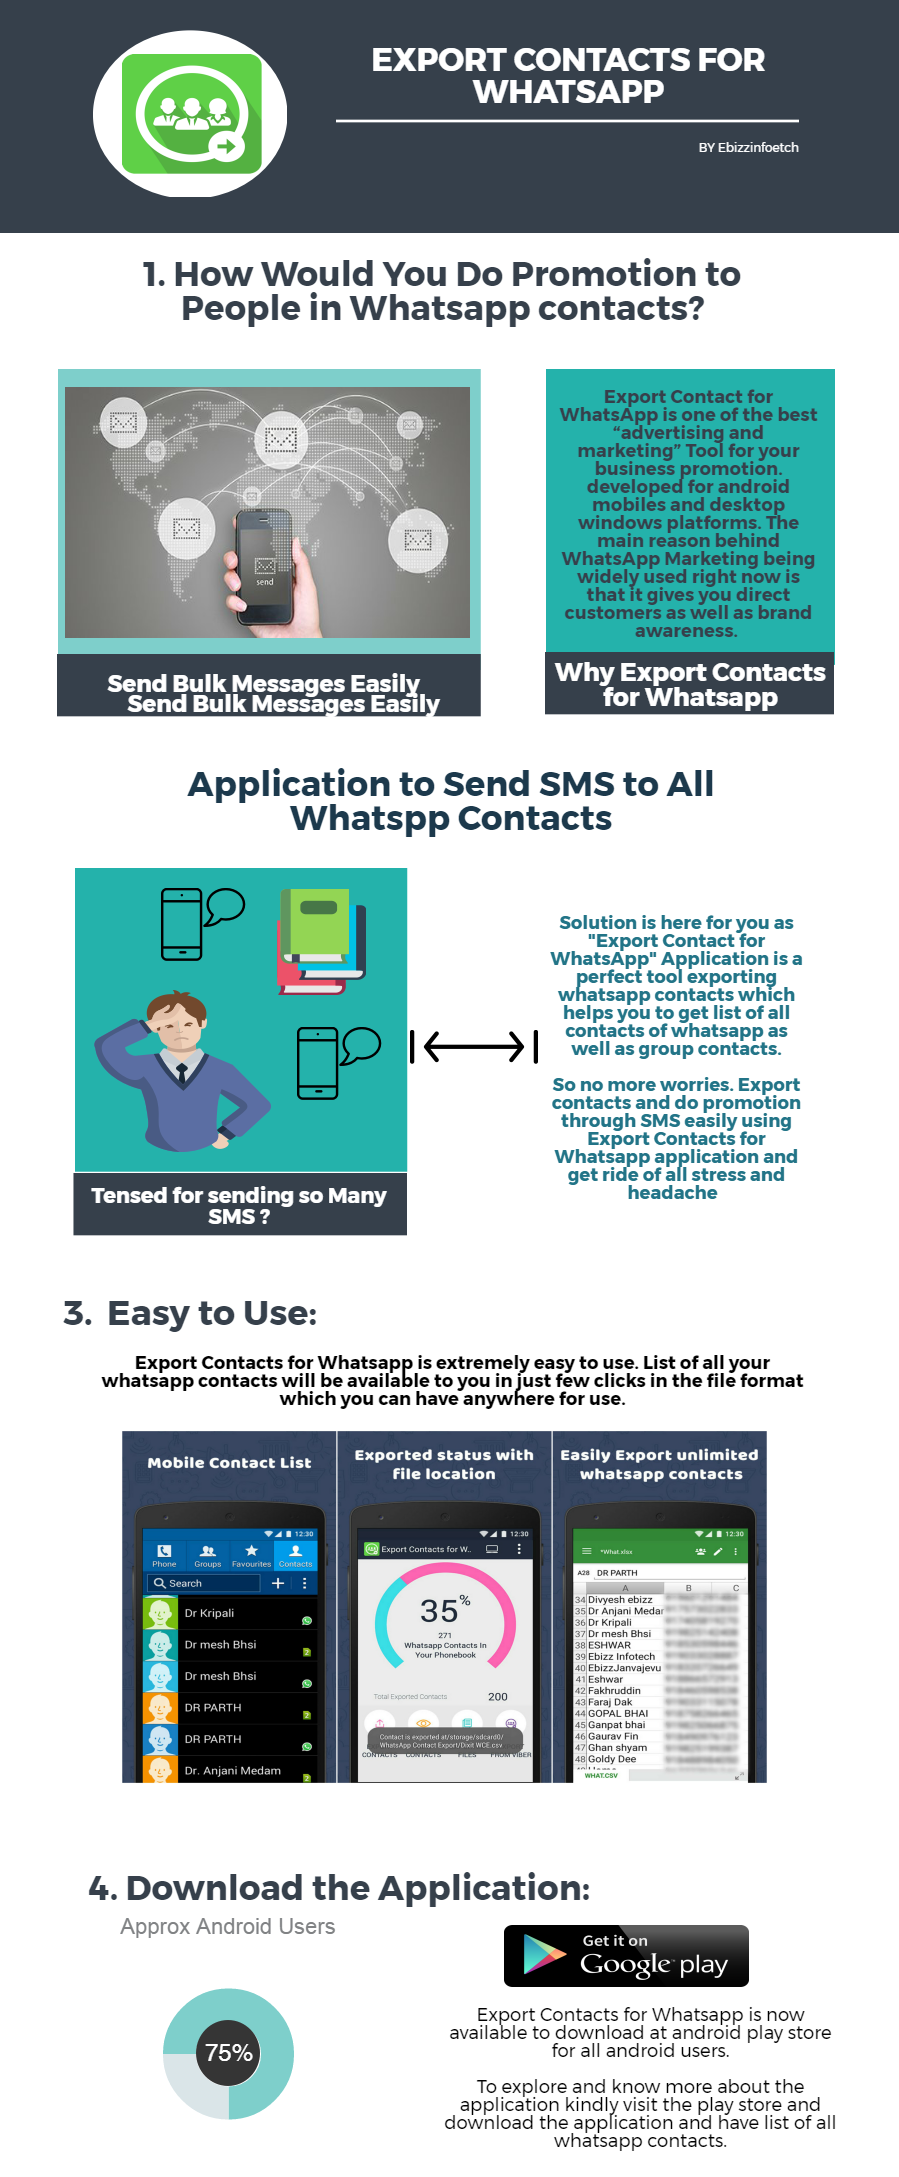 Export Contacts for Whatsapp android application